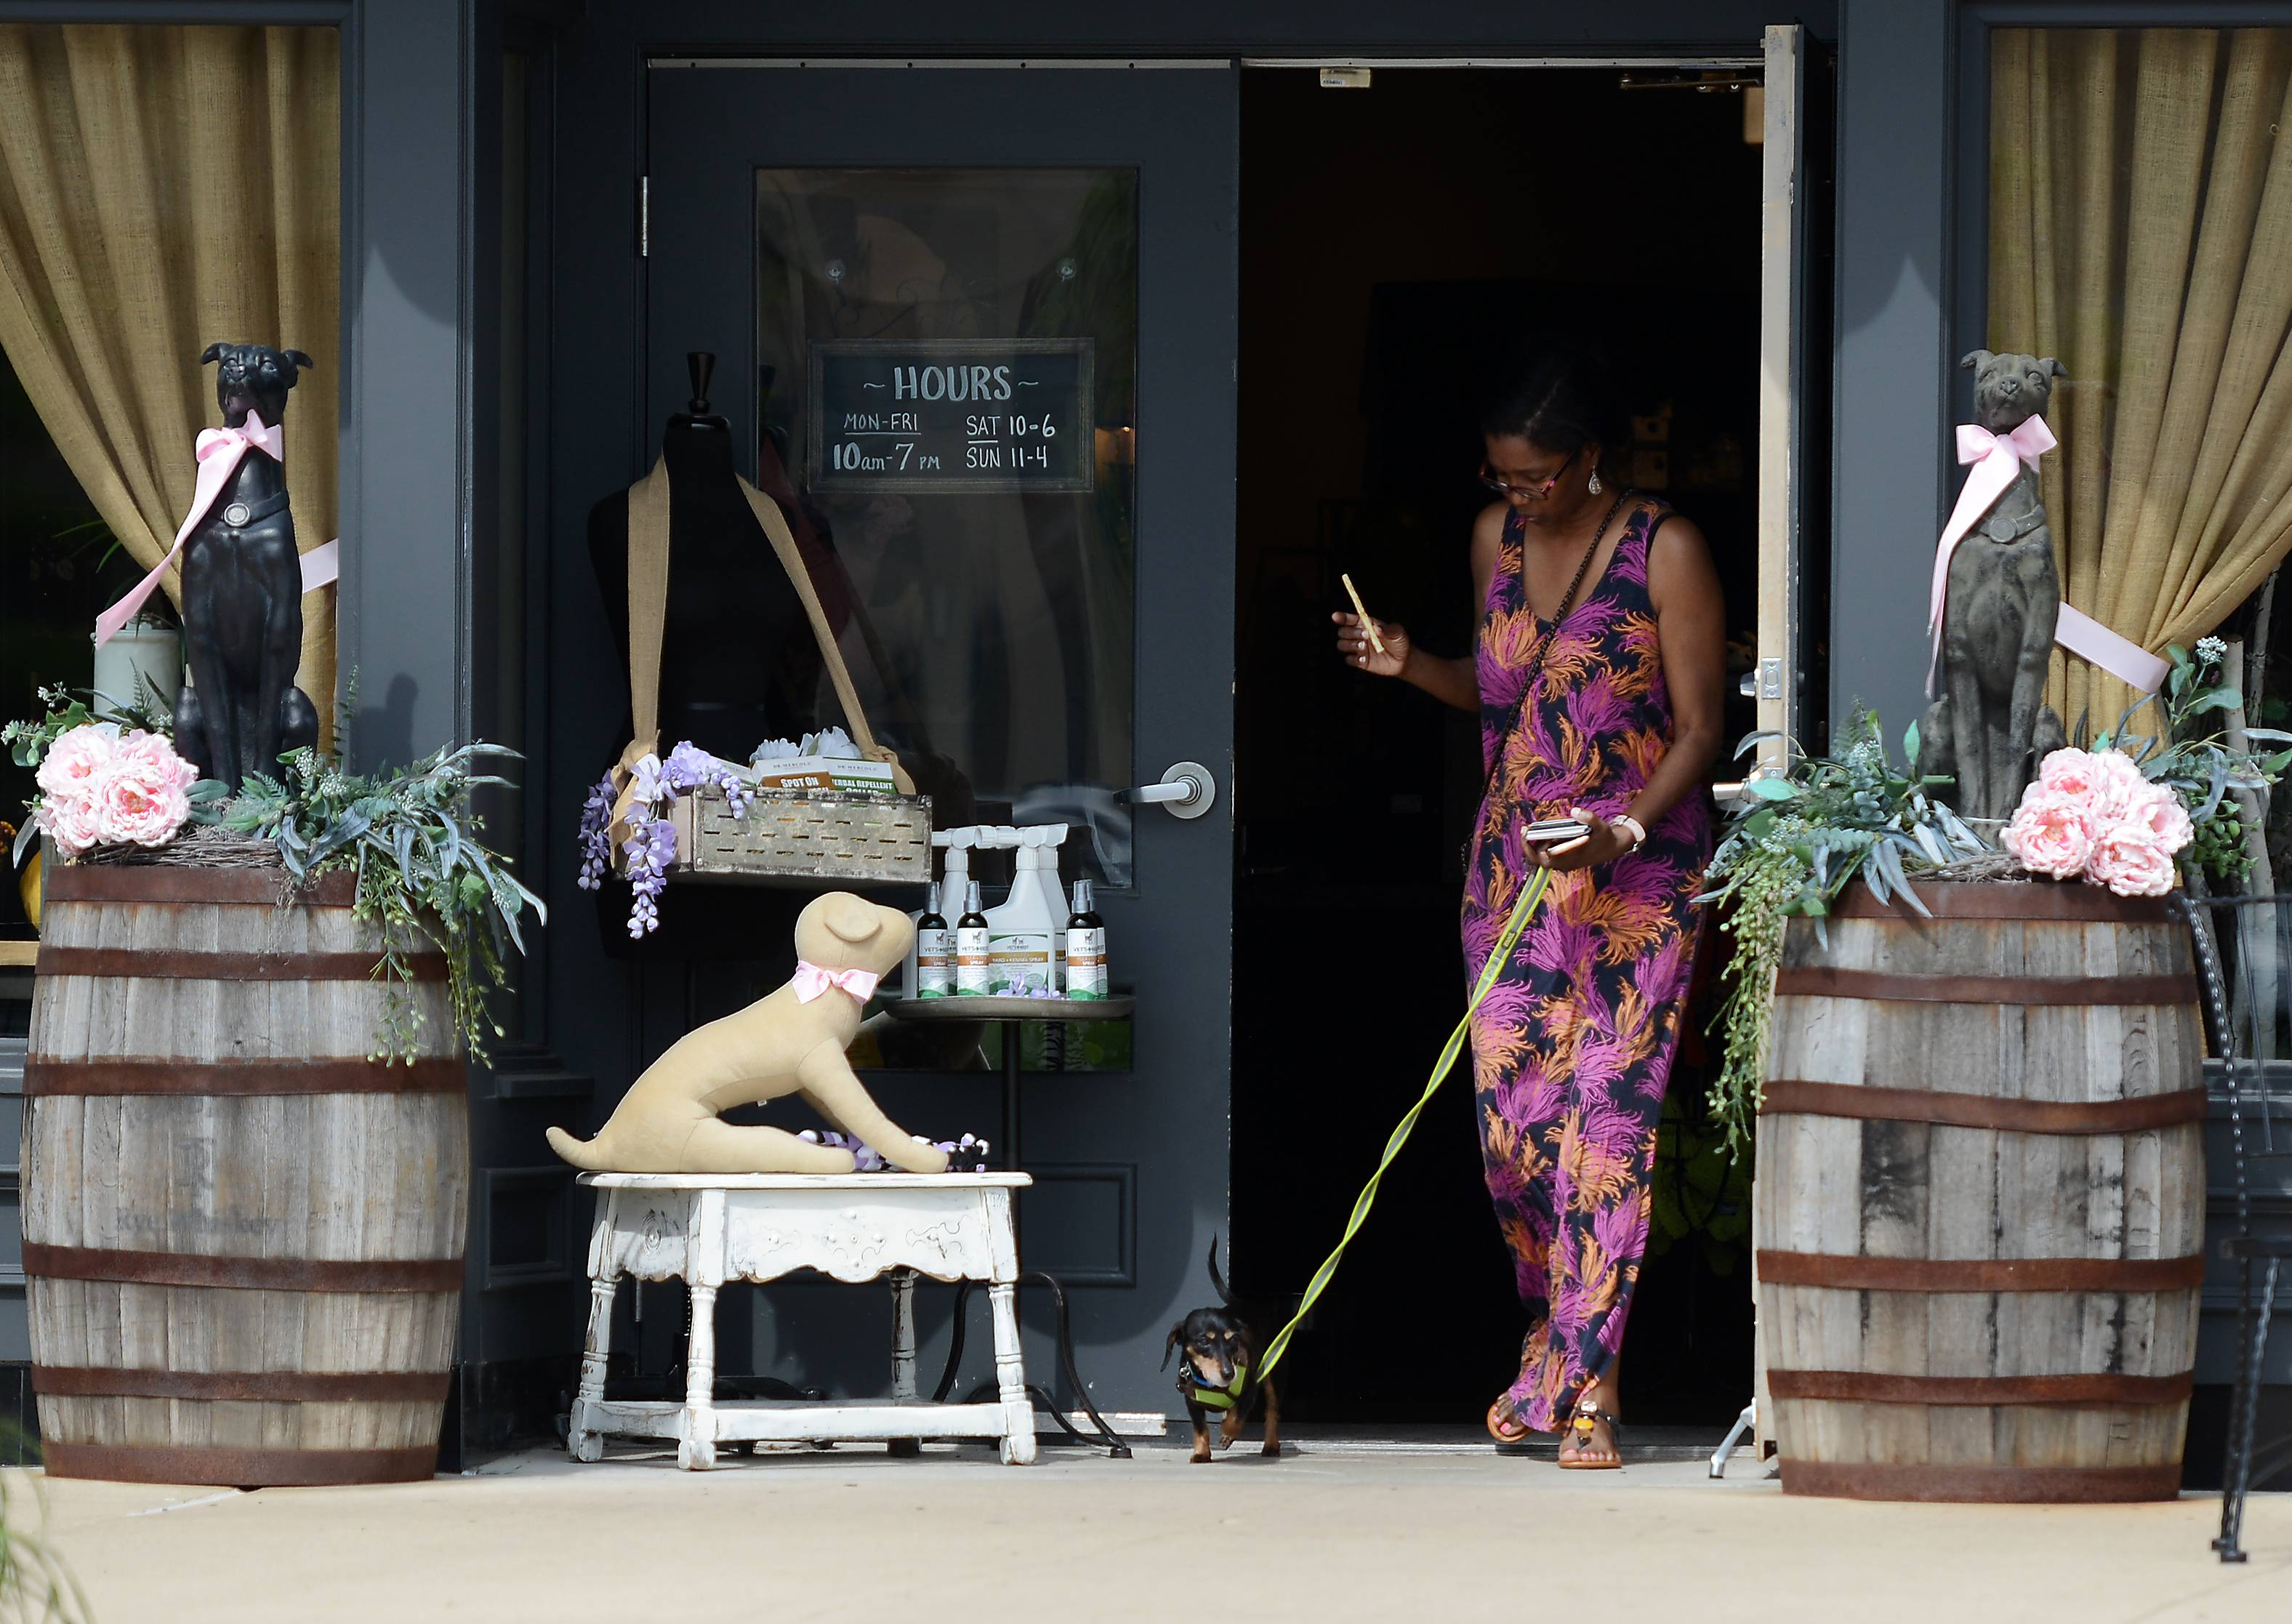 Kathy-Ann Pegues of Geneva and her dog Velvet come out of Wet Nose at Geneva Commons. In 30 days, Geneva businesses that want to can posts signs allowing pets, though state law will still prohibit people from bringing pets into restaurants.